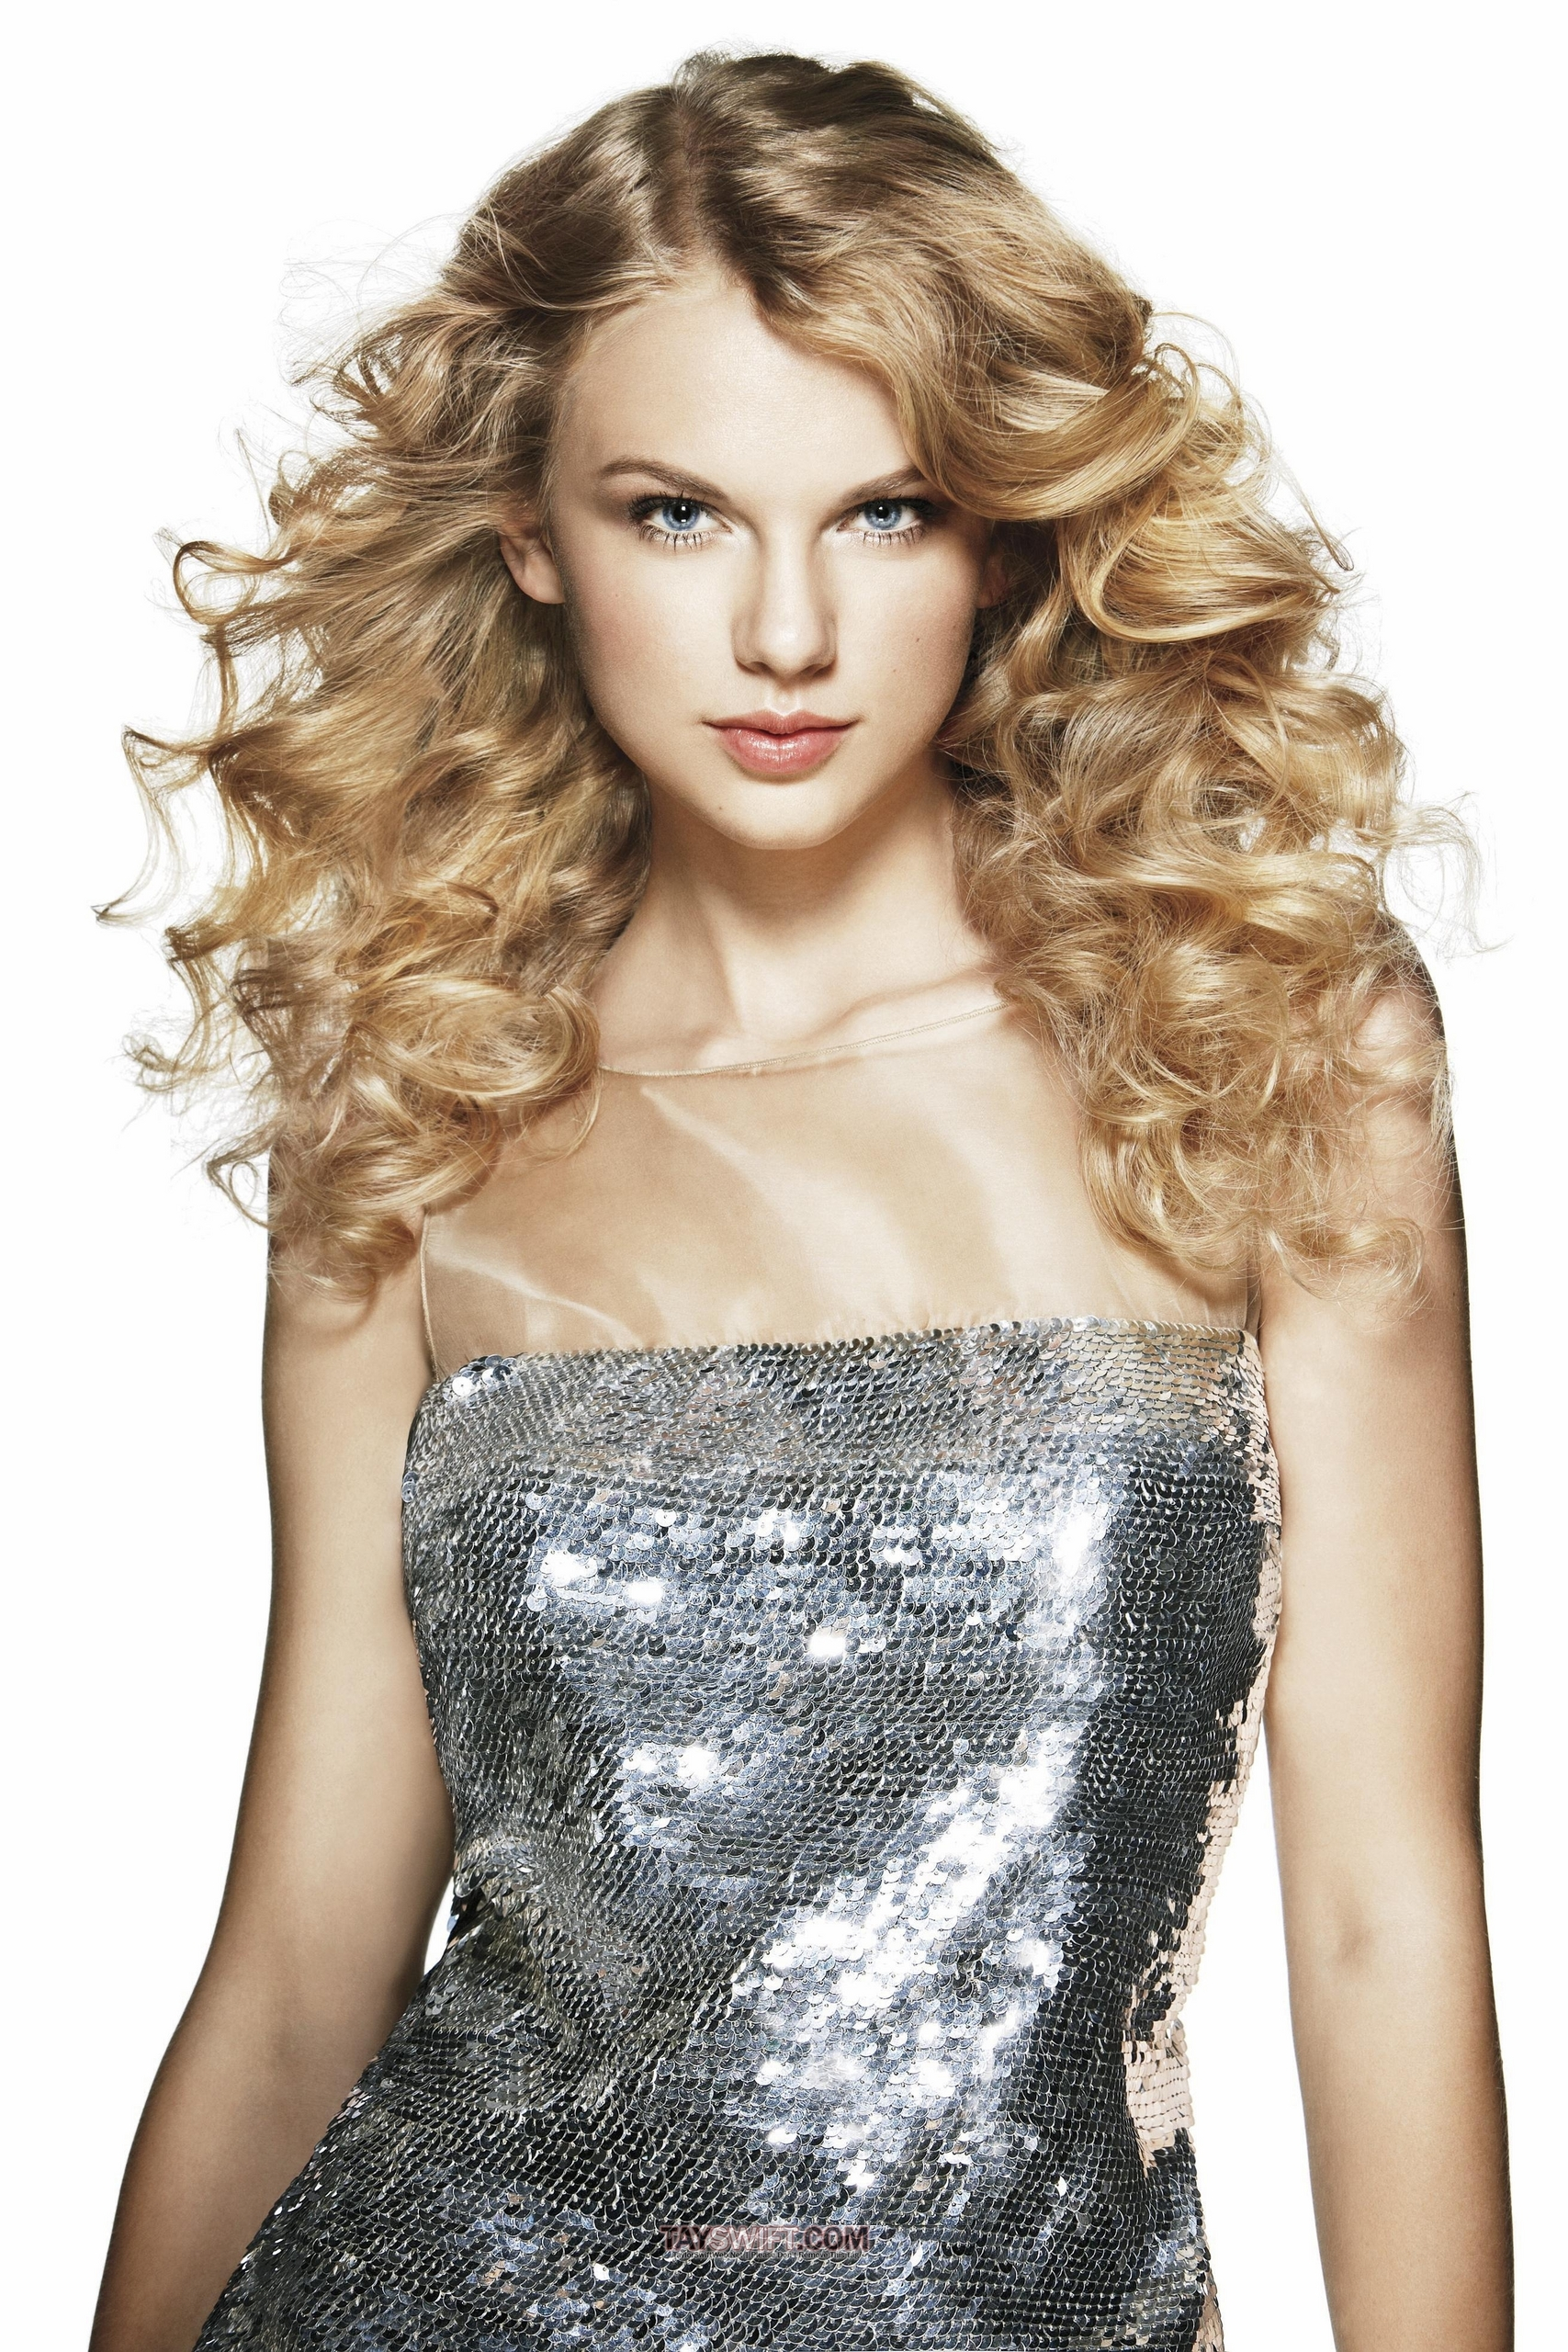 Taylor تیز رو, سوئفٹ - ELLE photoshoot HQ